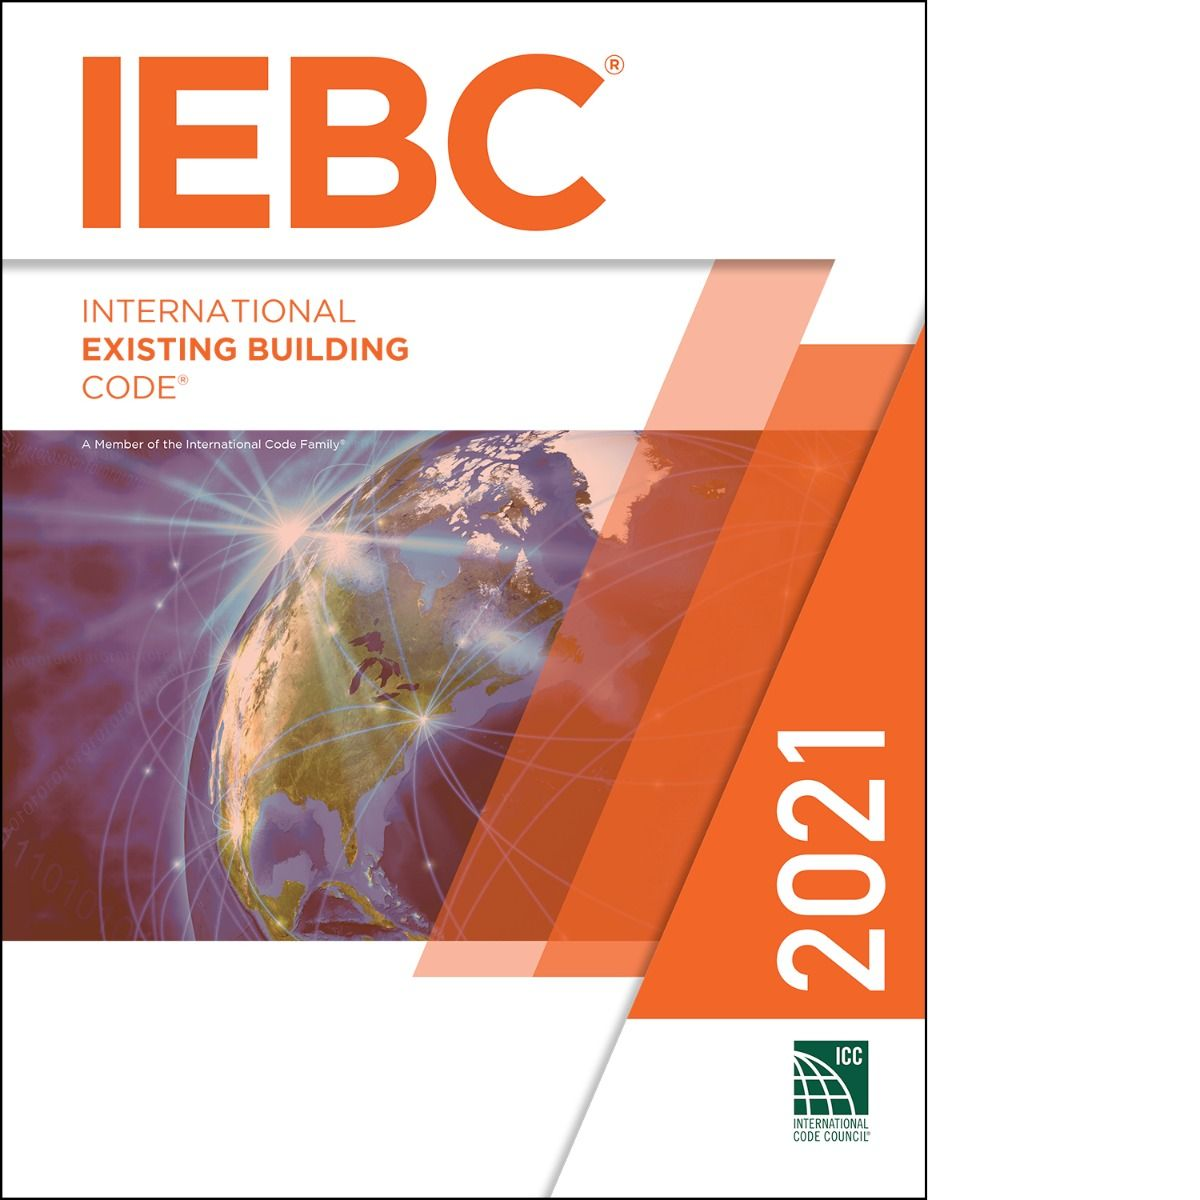 2021 International Existing Building Code®